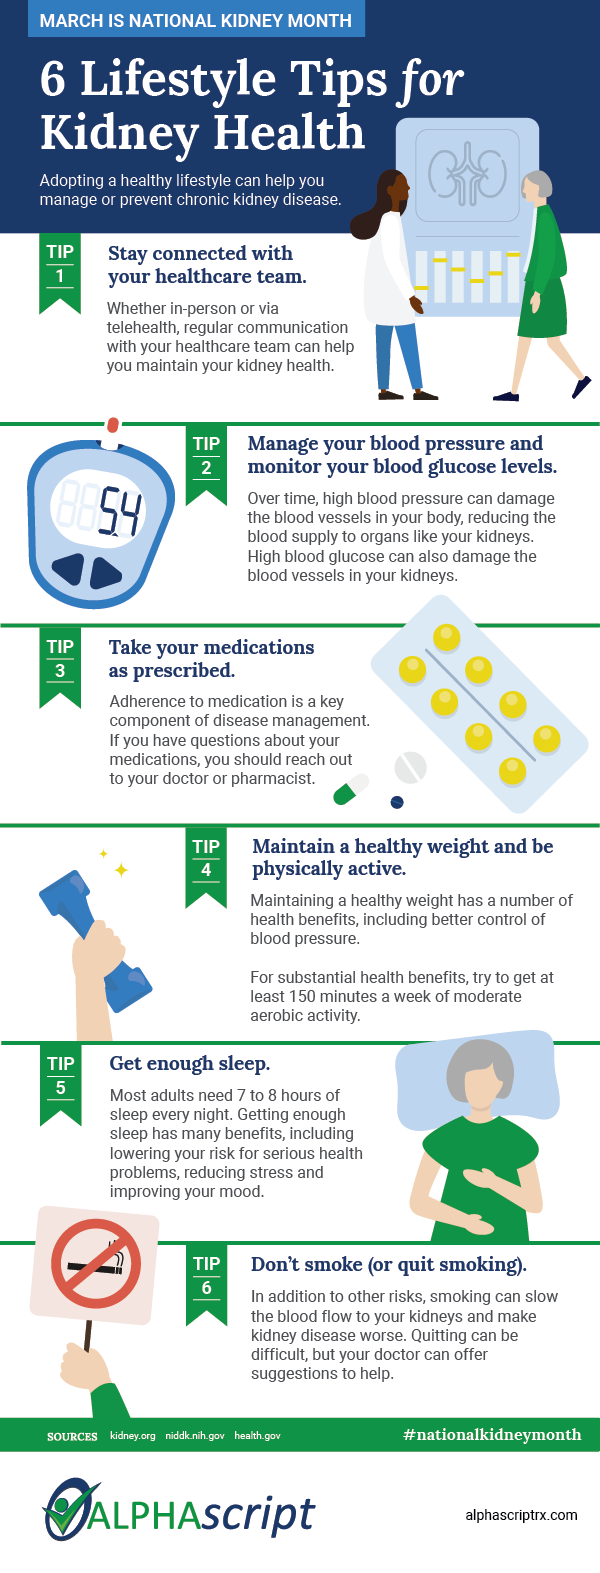 Kidney health lifestyle tips infographic.